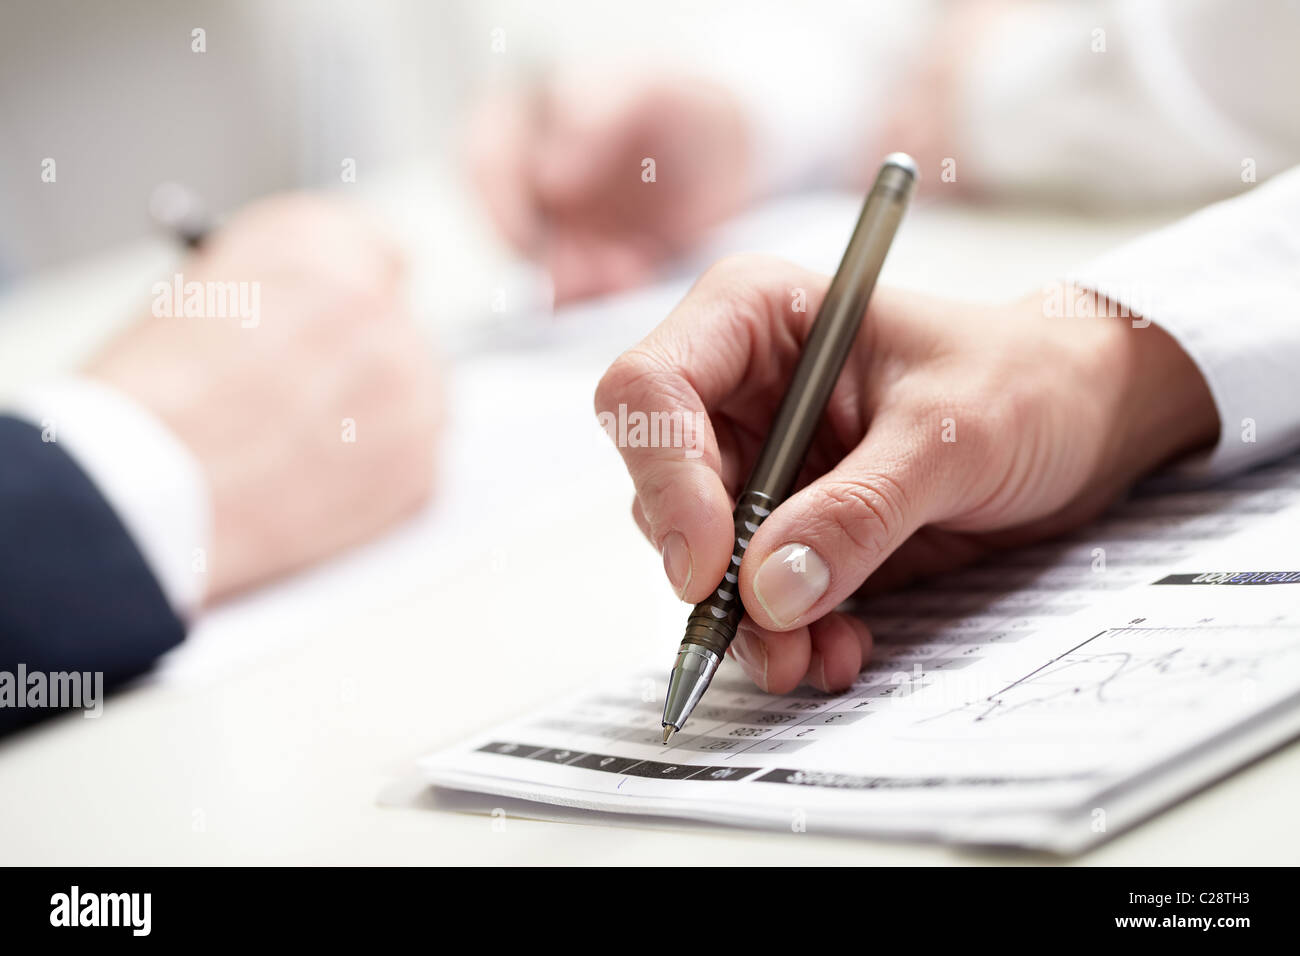 close-up of businesswoman's hand writing - Stock Image